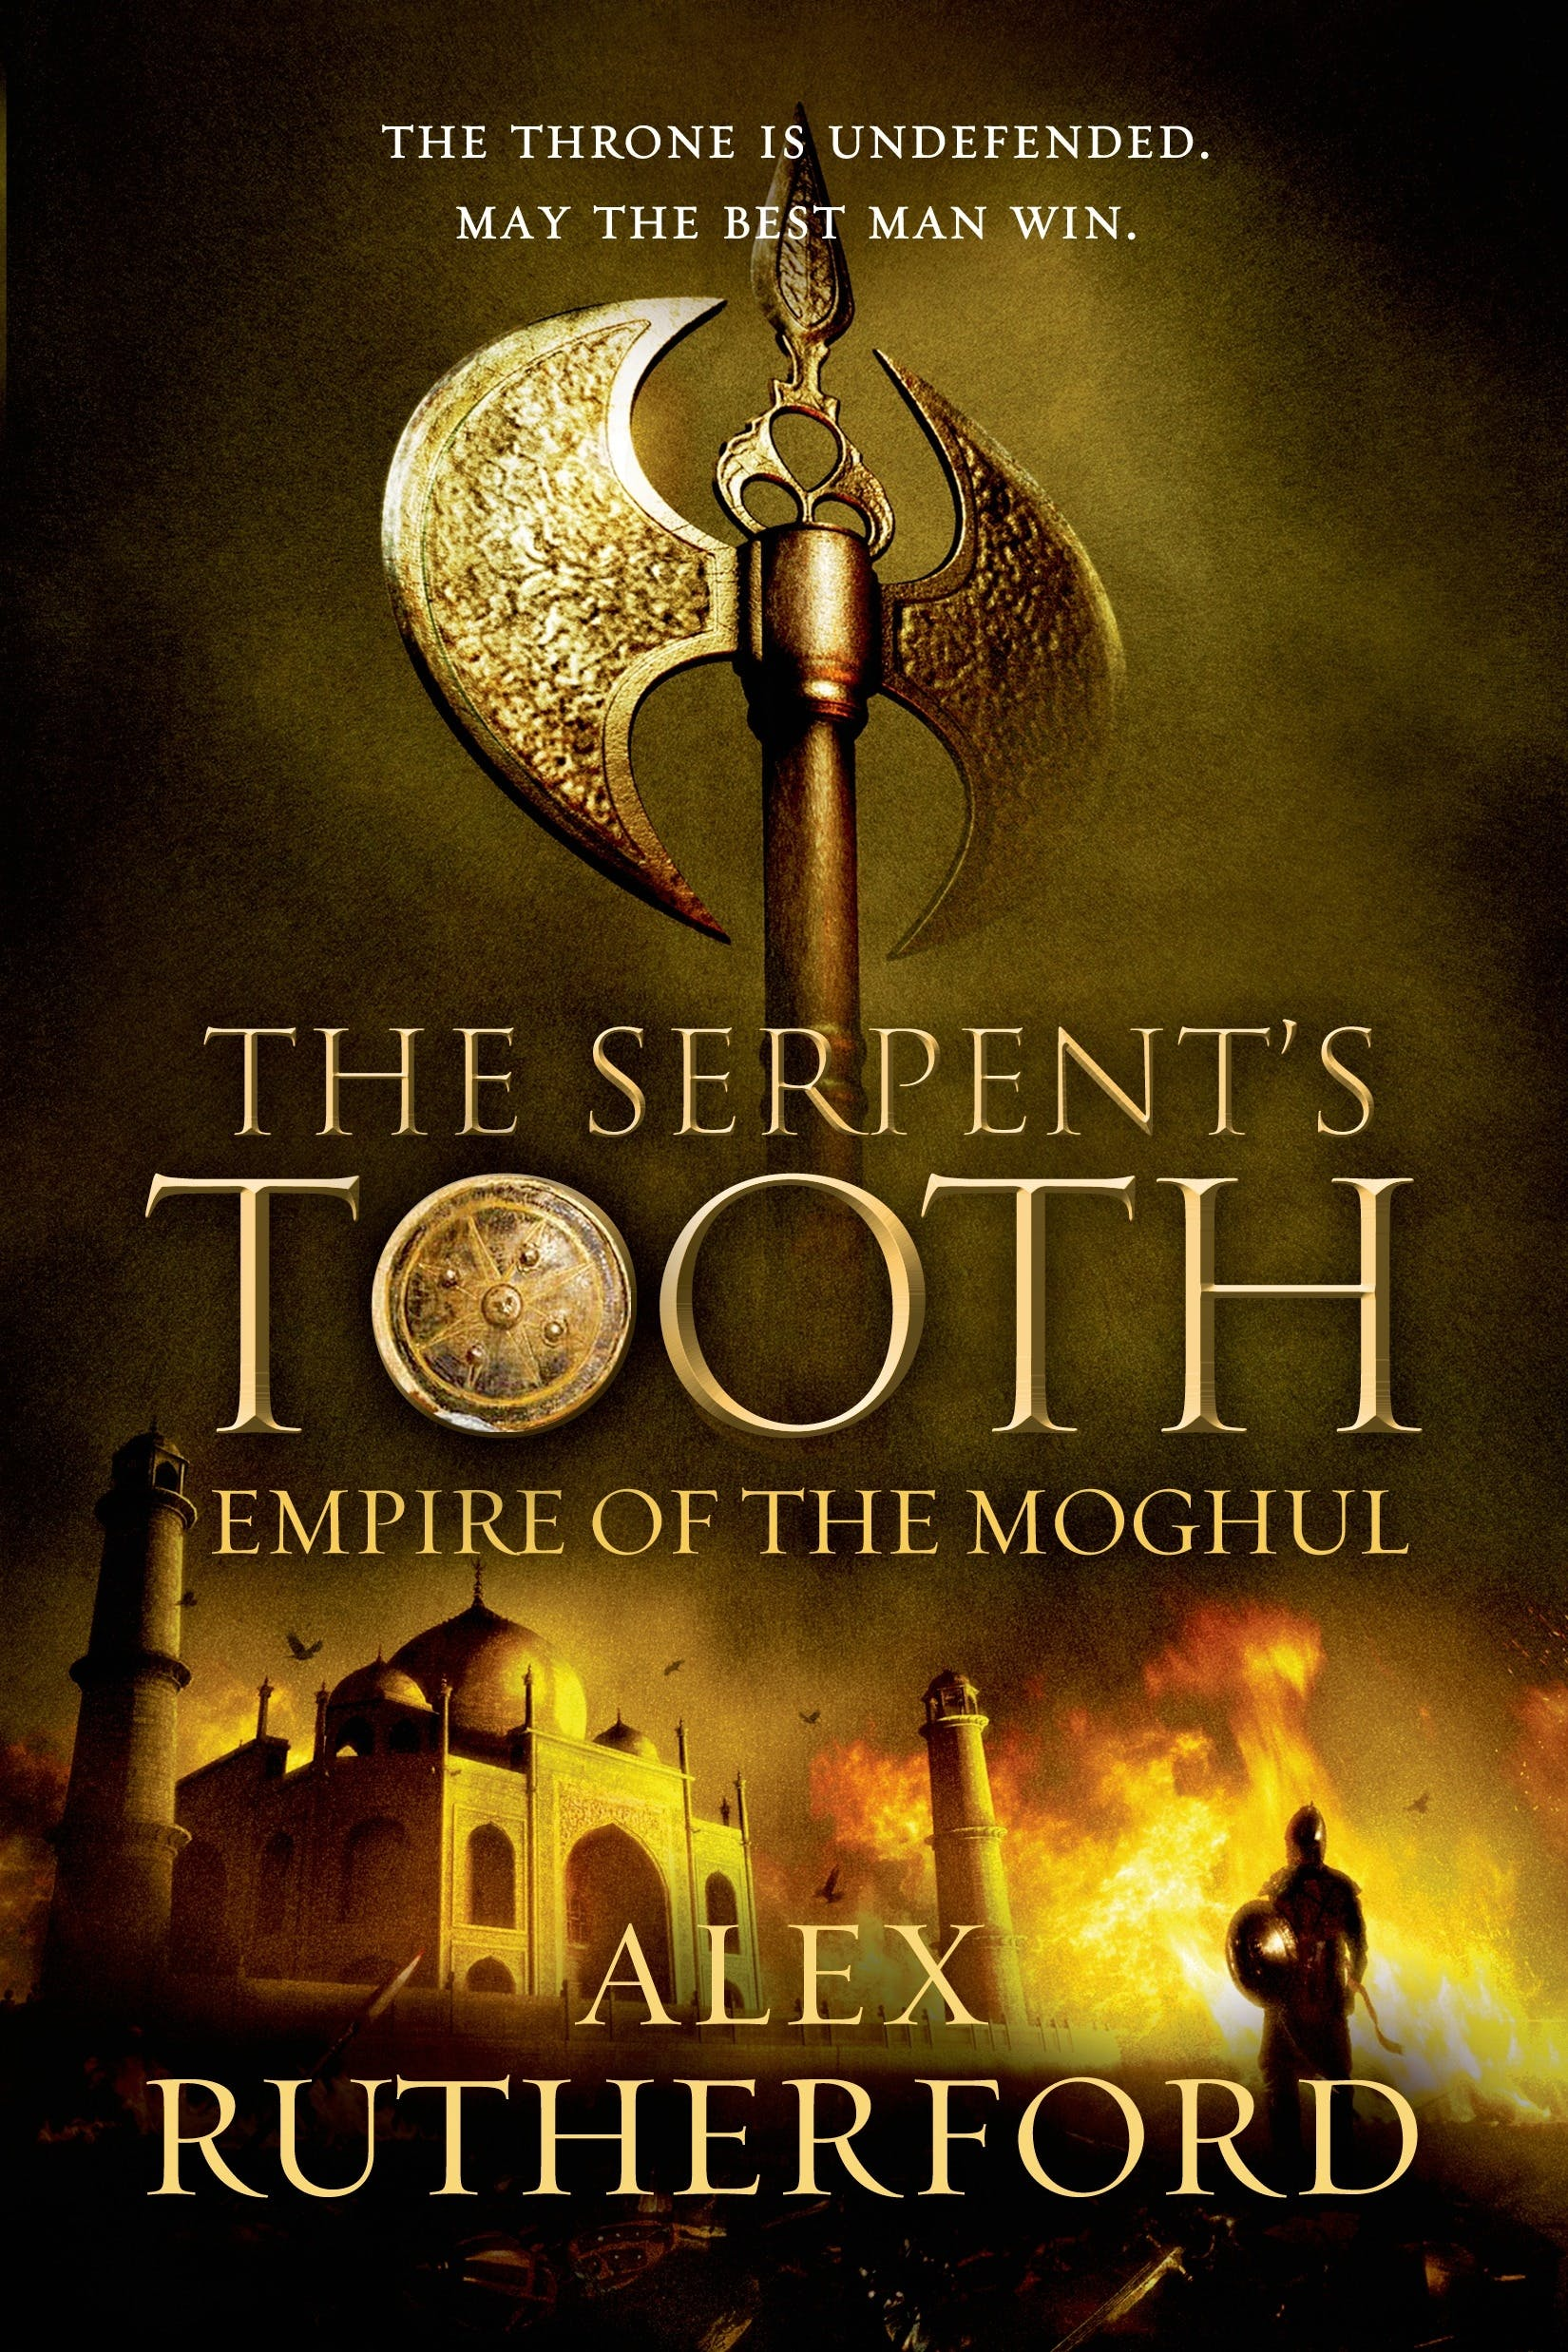 Image of The Serpent's Tooth